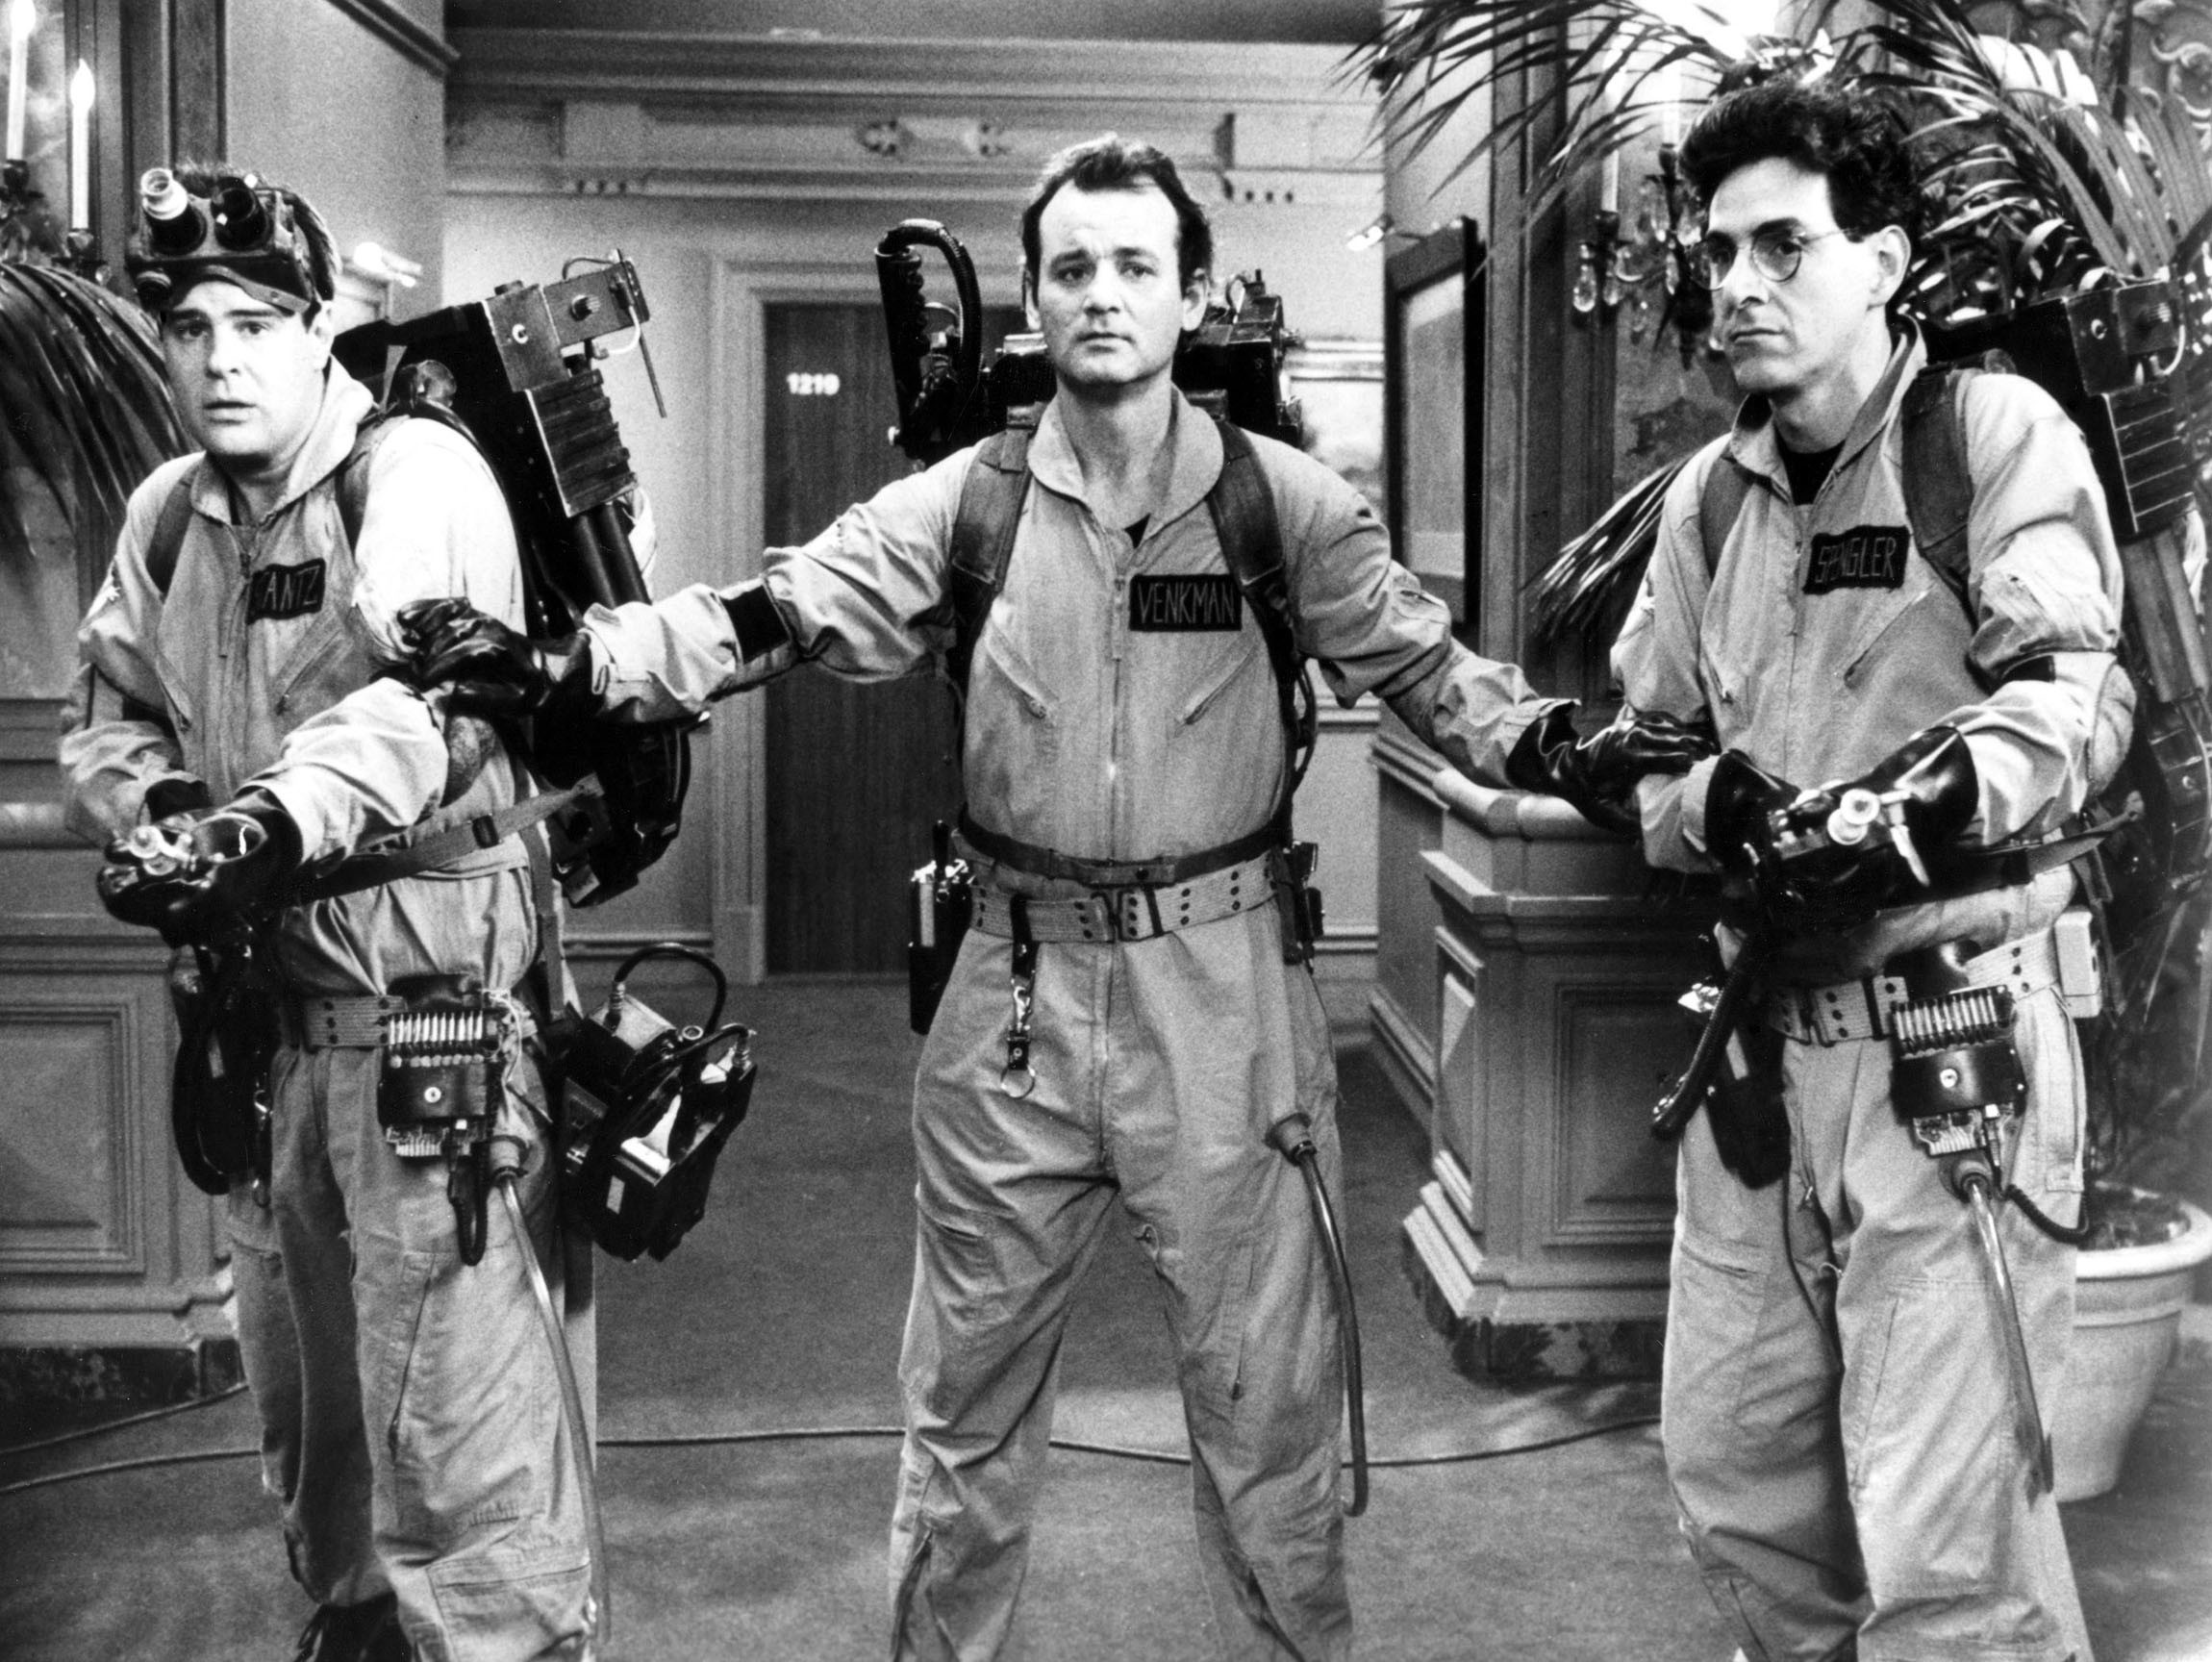 2300x1728 ghostbusters-movie-image-black-white-01 ""